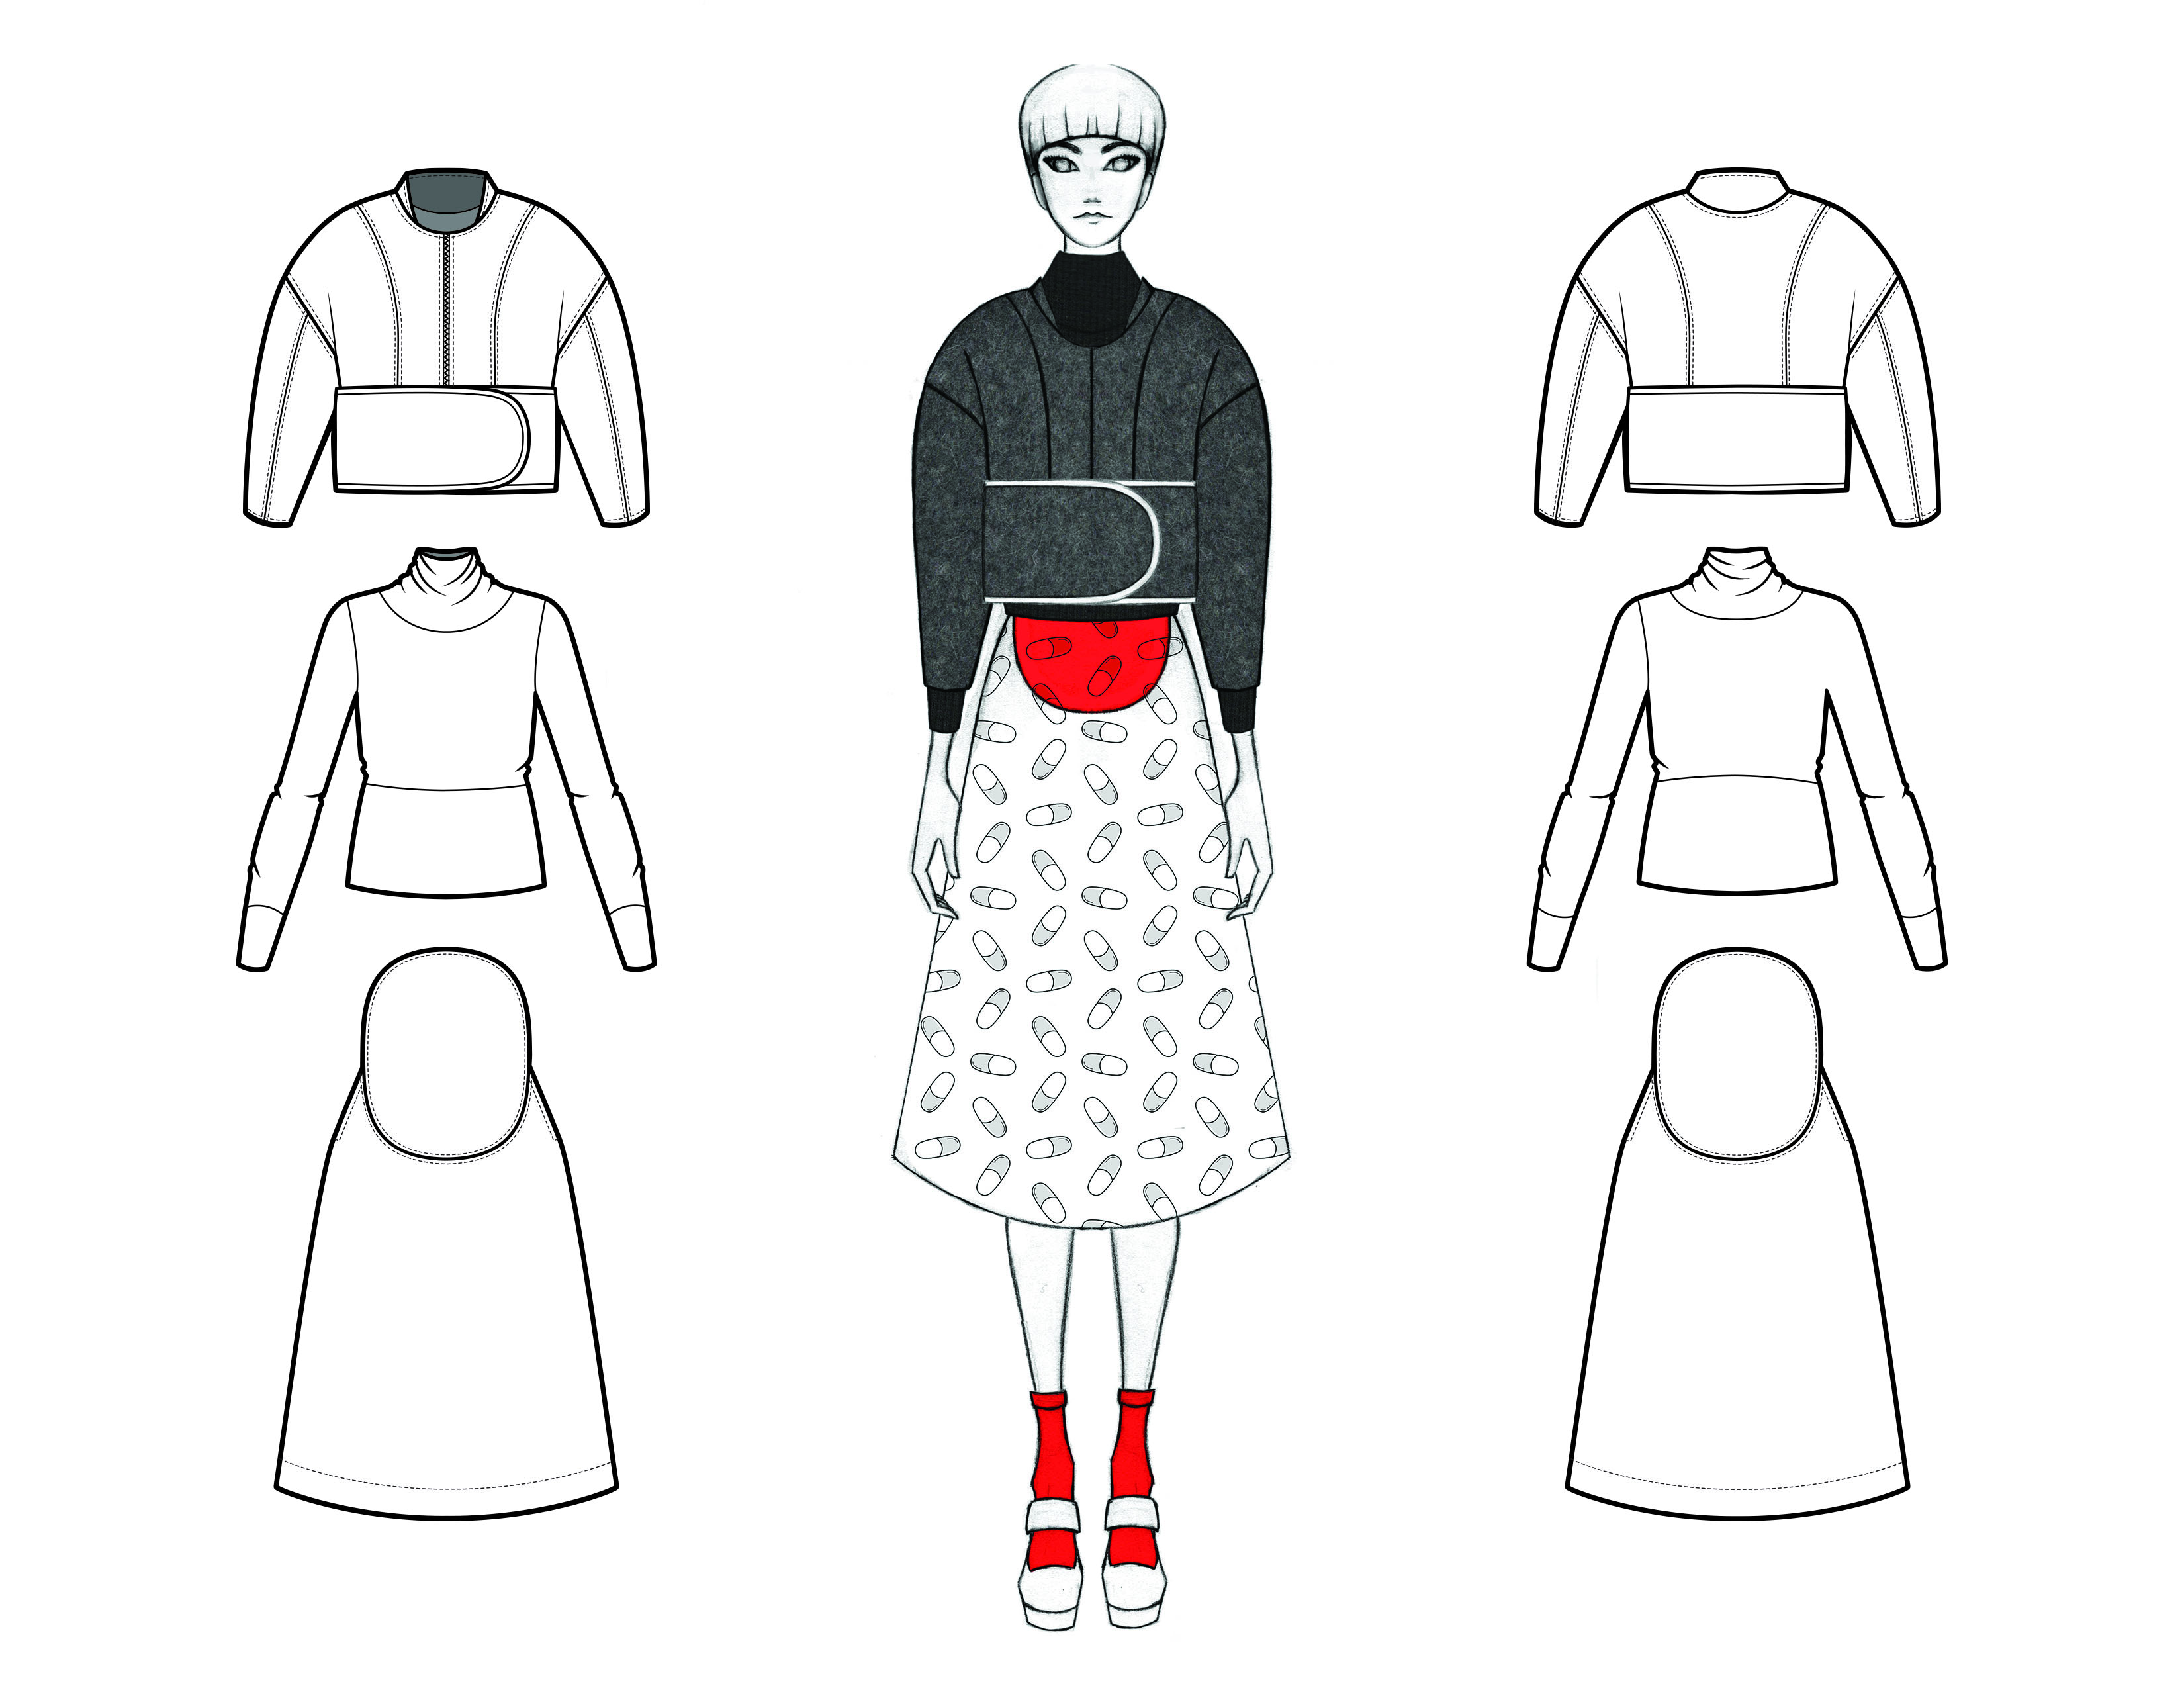 MGHN Capsule Look 5 Illustration and Flats